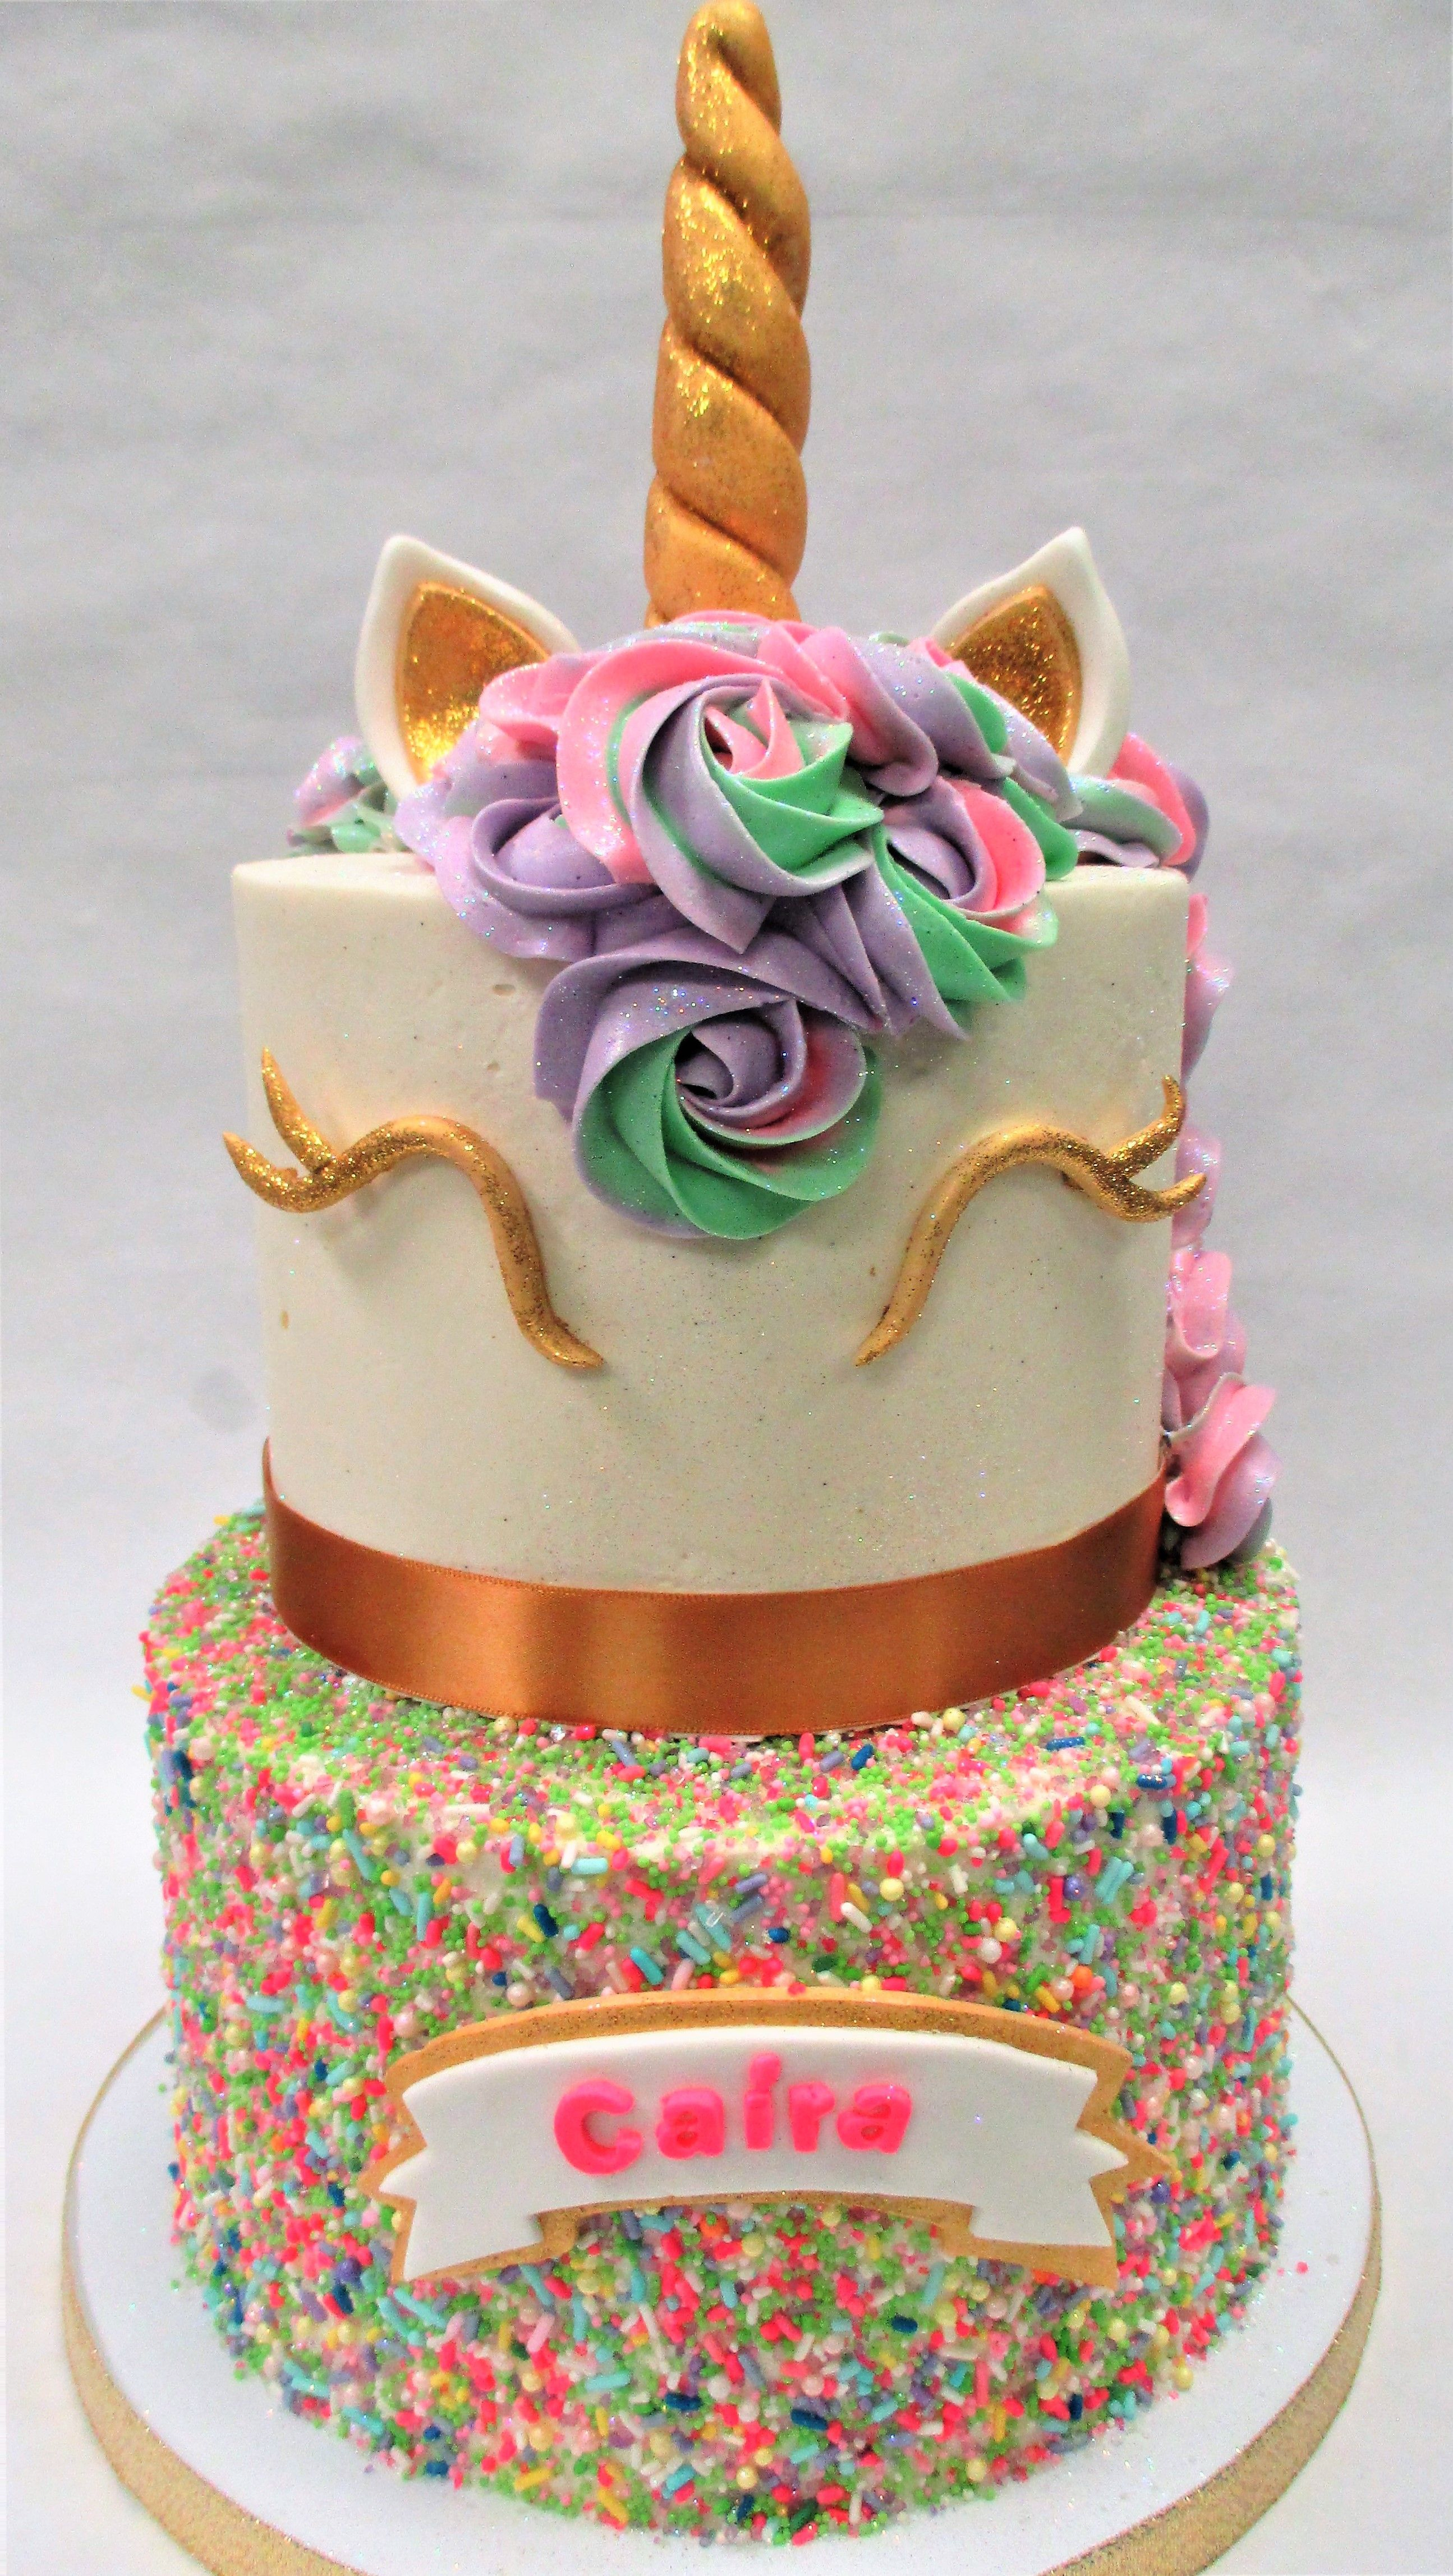 Cakes Gourmet Desserts Flavor Cupcakery Bake Shop With Images